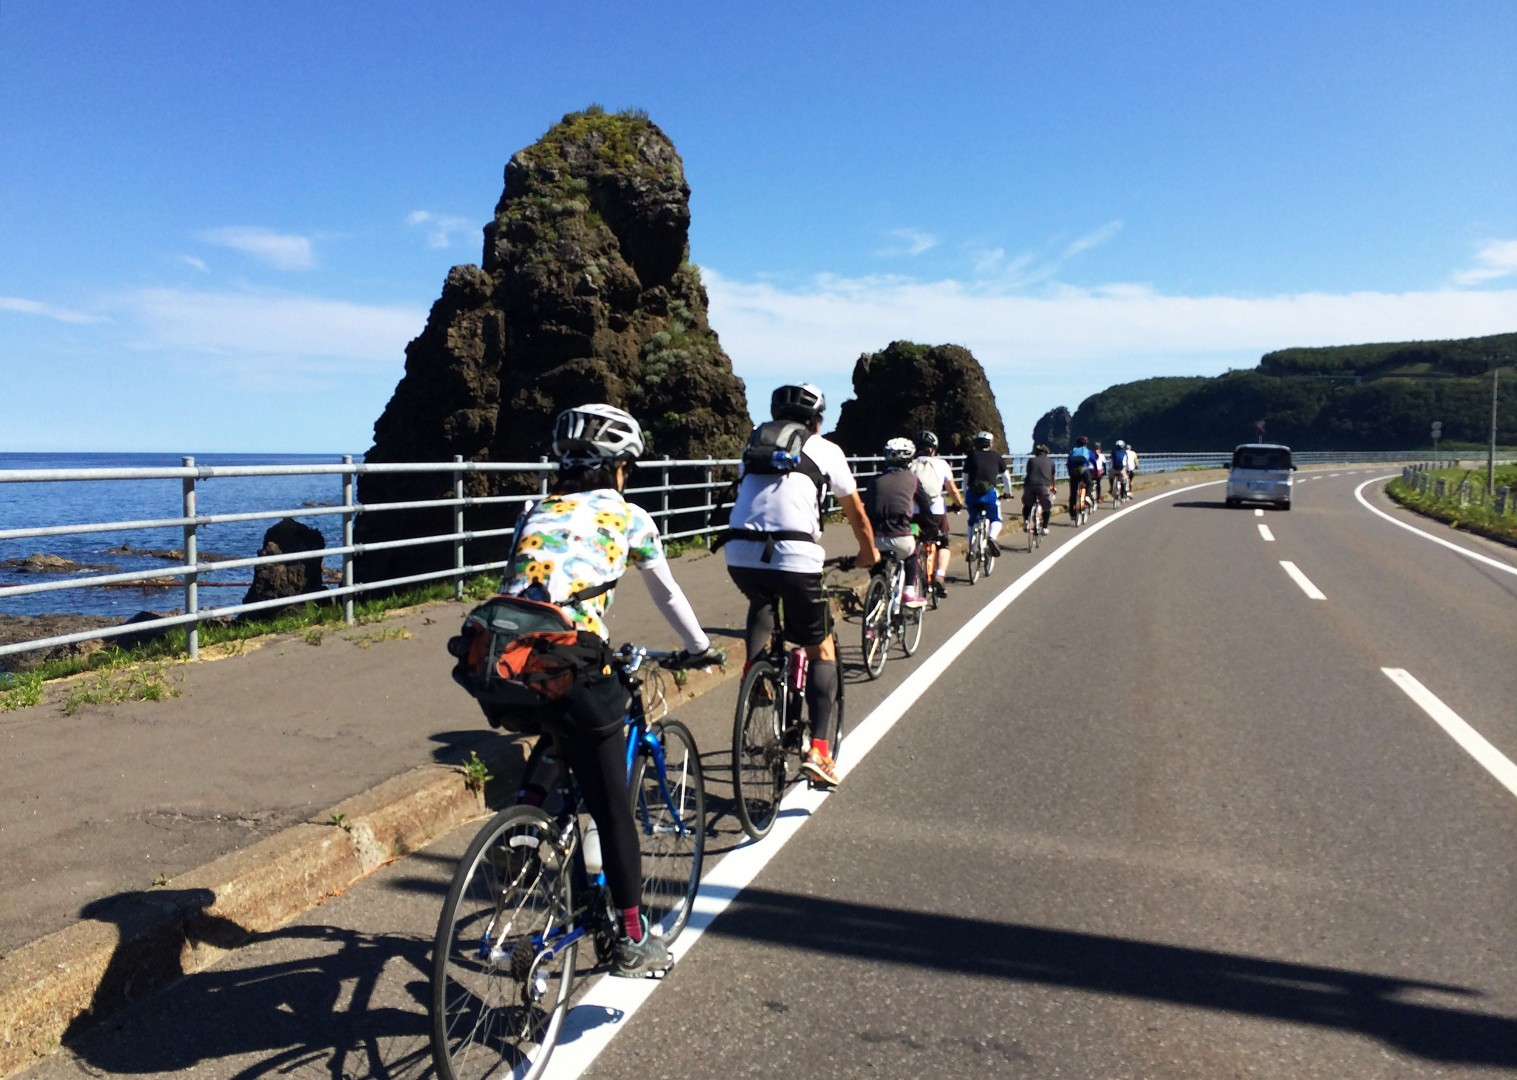 cycling-holiday-japan-undiscovered-japan-the-heart-of-hokkaido.jpg - Japan - Undiscovered Japan - The Heart of Hokkaido - Cycling Holiday - Cycling Adventures